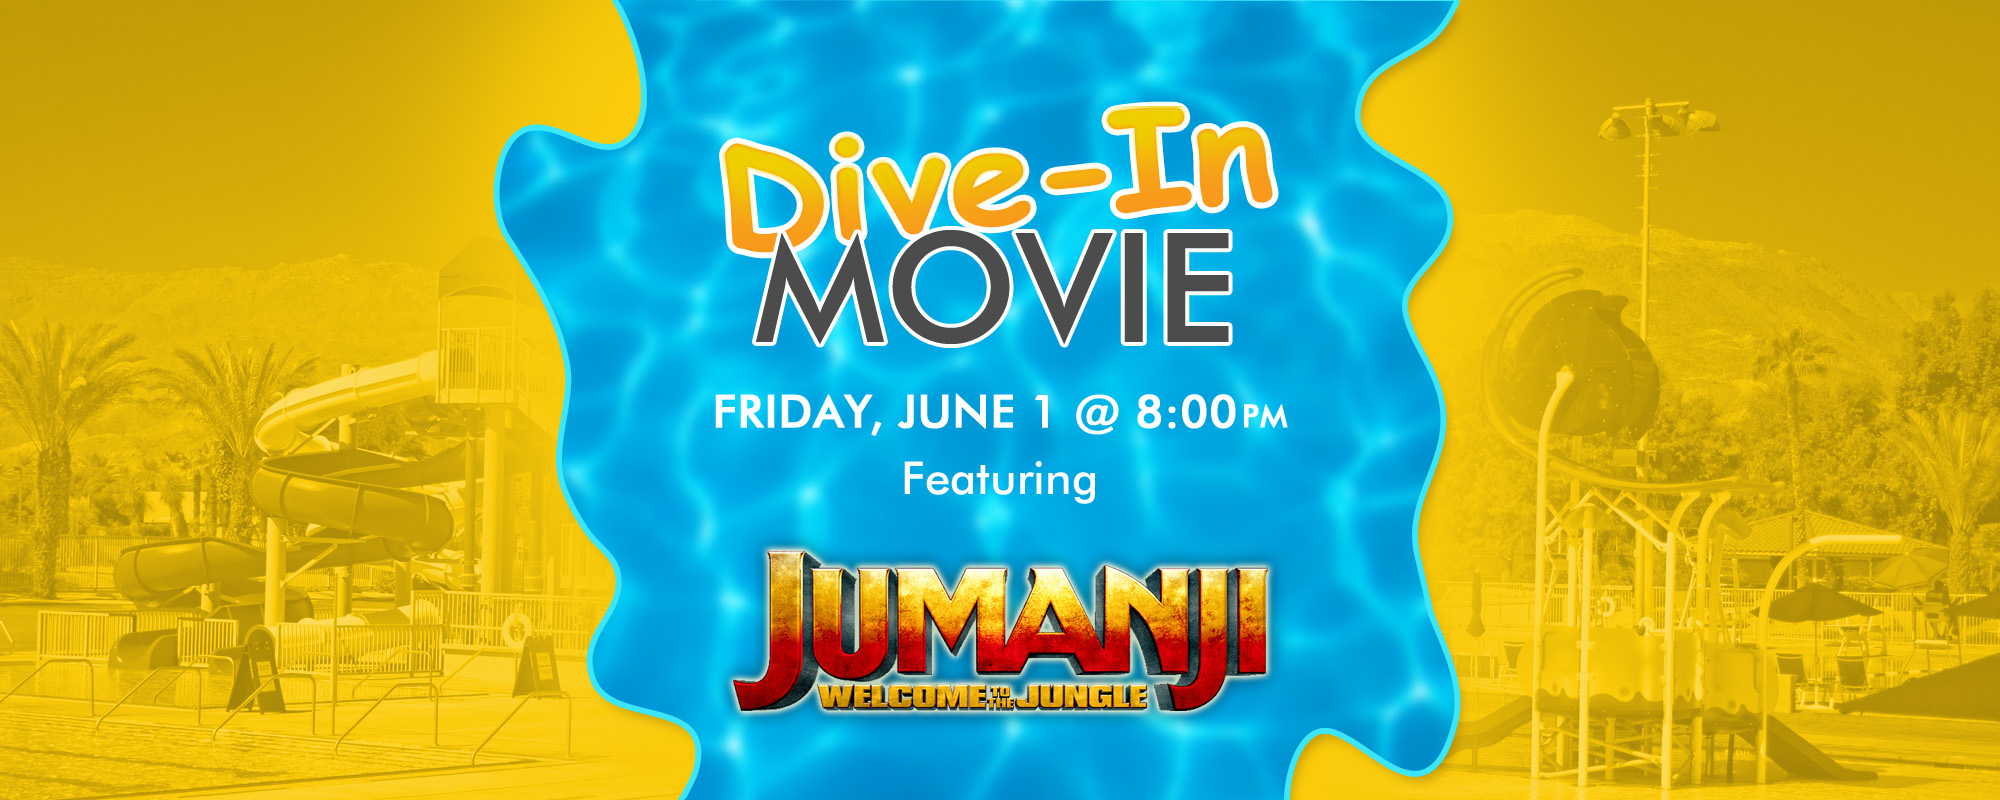 slider_DiveInMovie_Jumanji